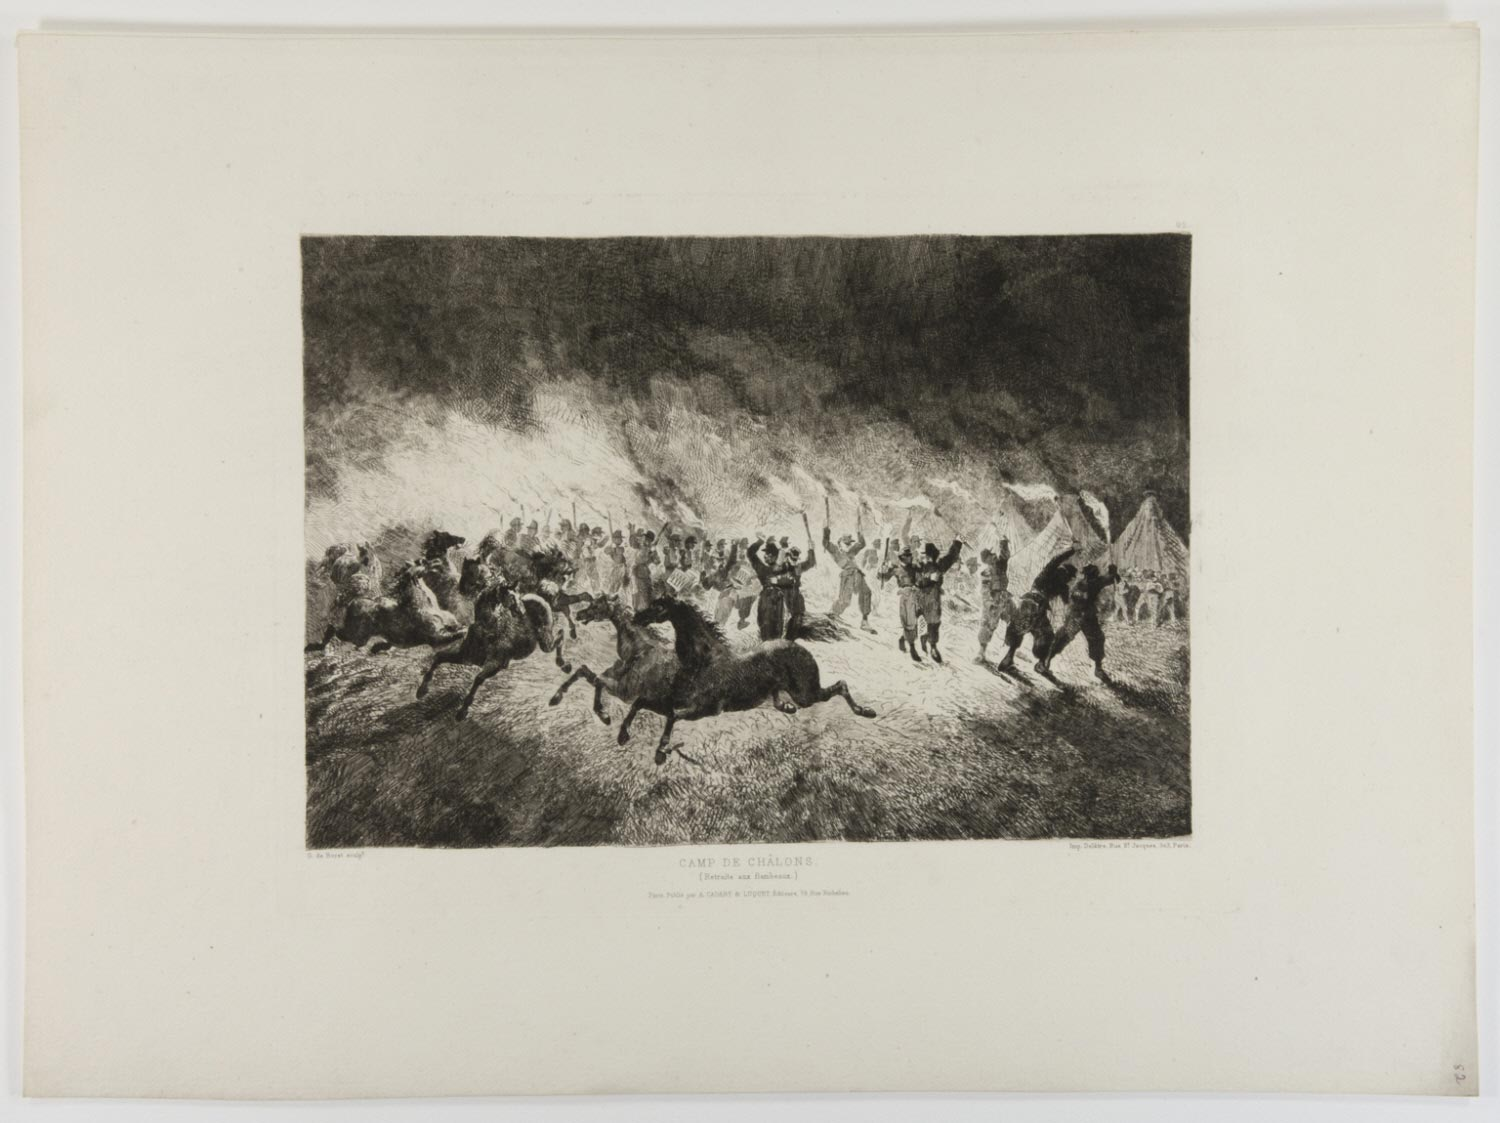 Camp at Châlons (Horses Running from Flames)